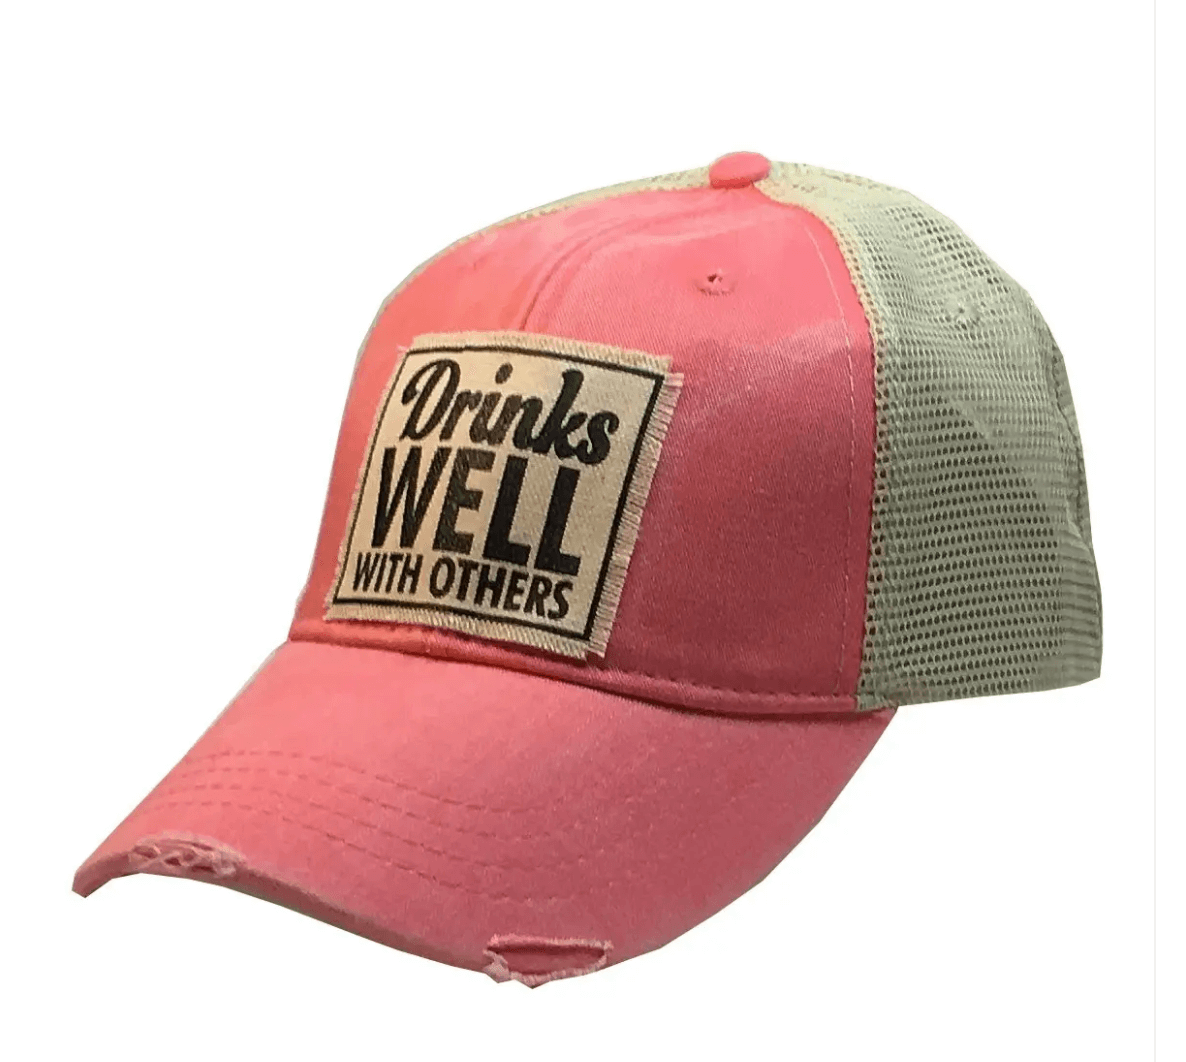 Coral Drinks Well With Others Trucker Hat